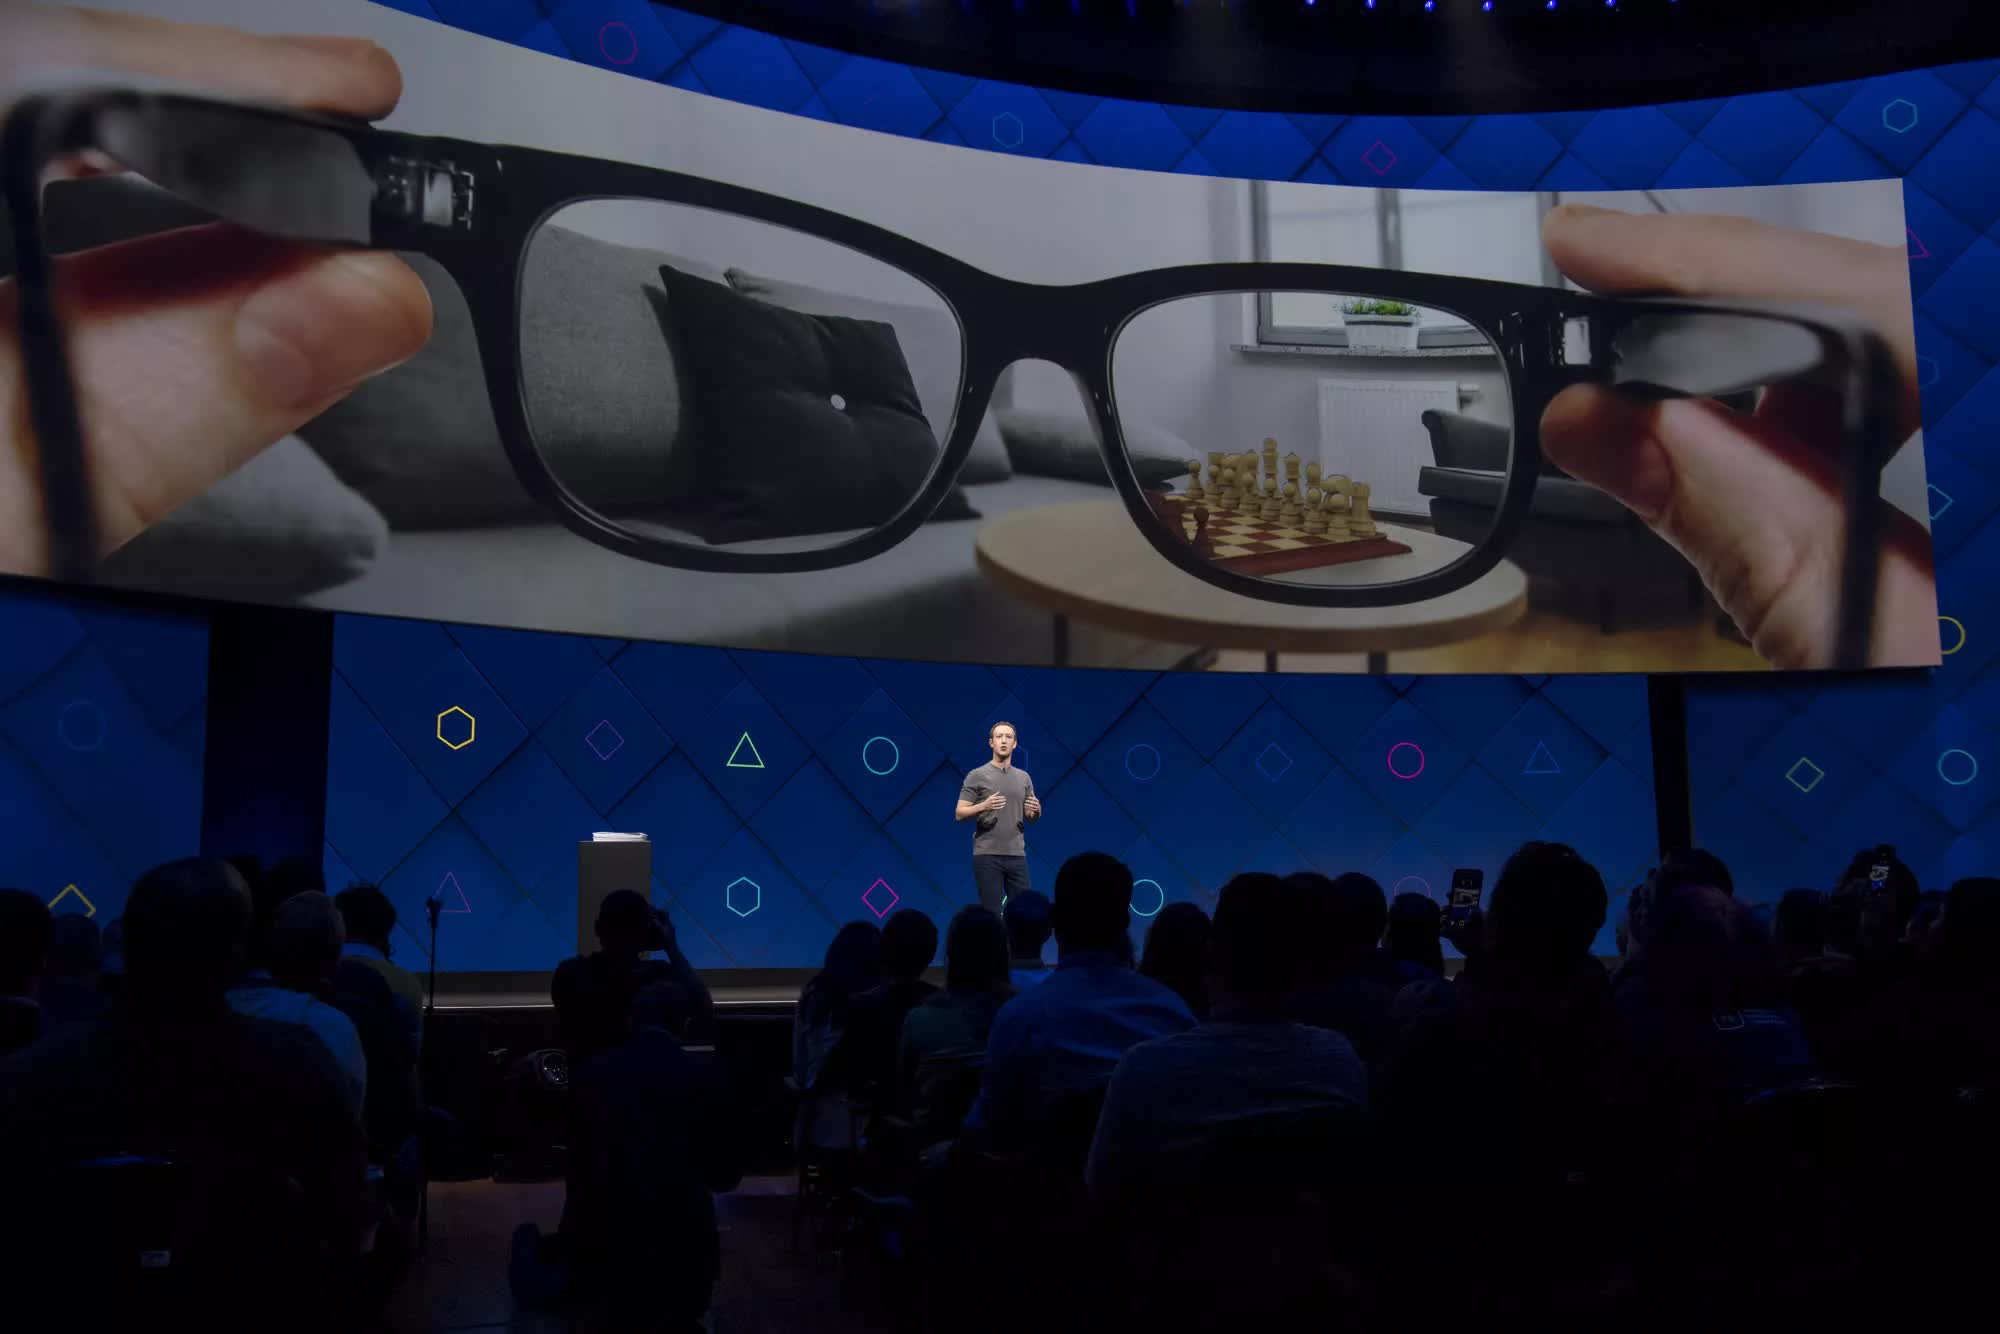 Mark Zuckerberg envisions a future where you could use AR glasses to teleport for in-person meetings